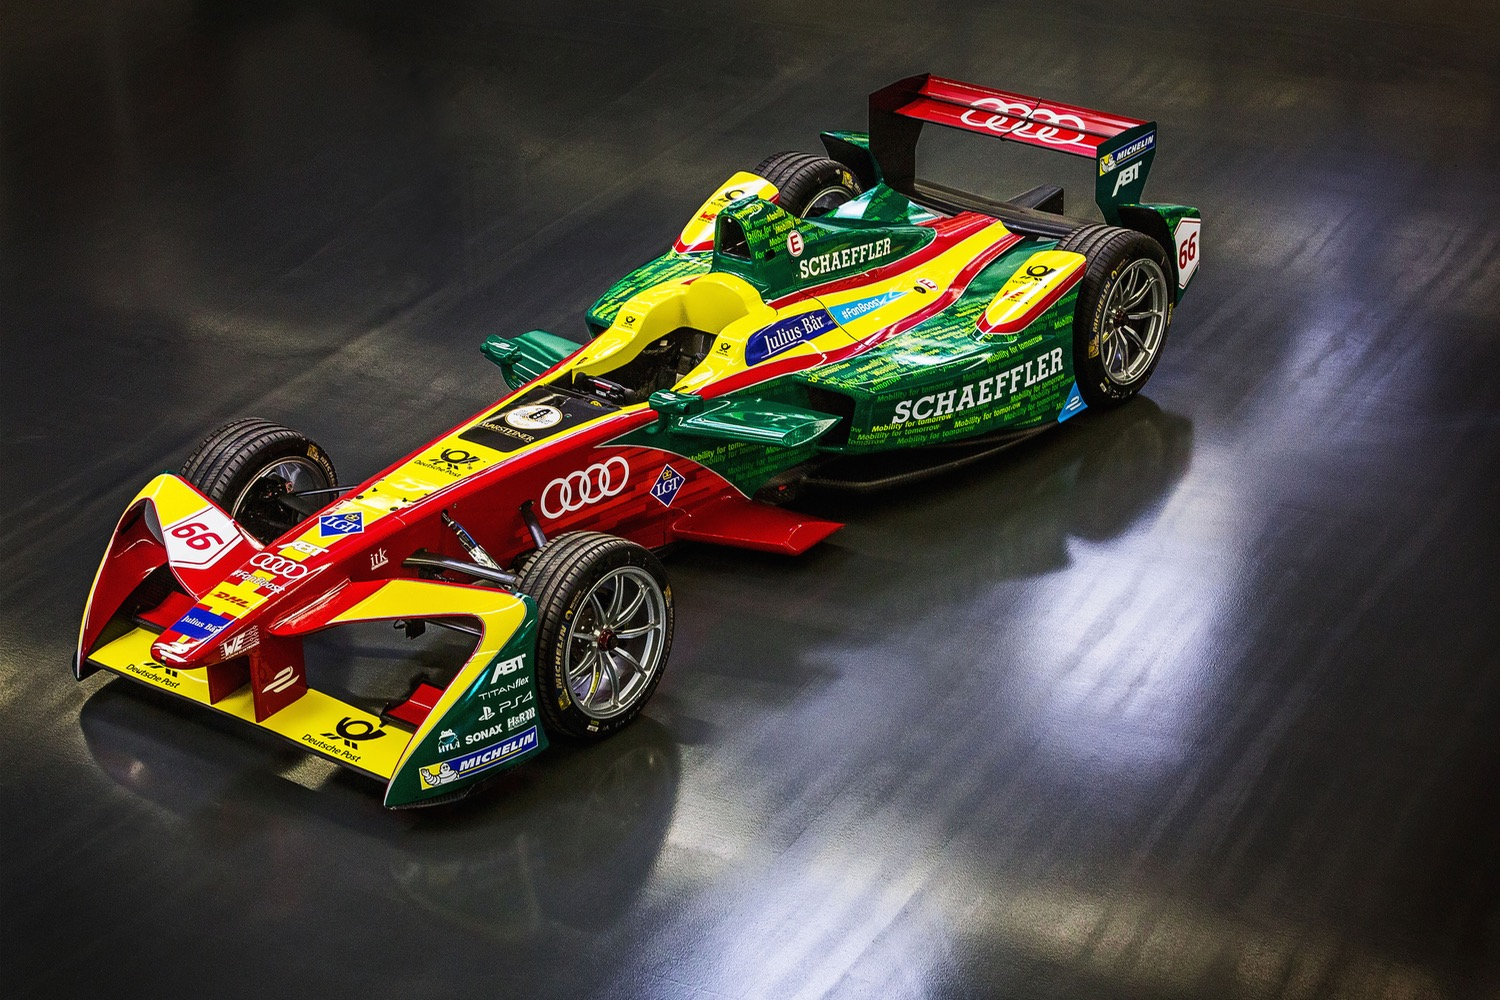 Audi announces increasing involvement in Formula E racing